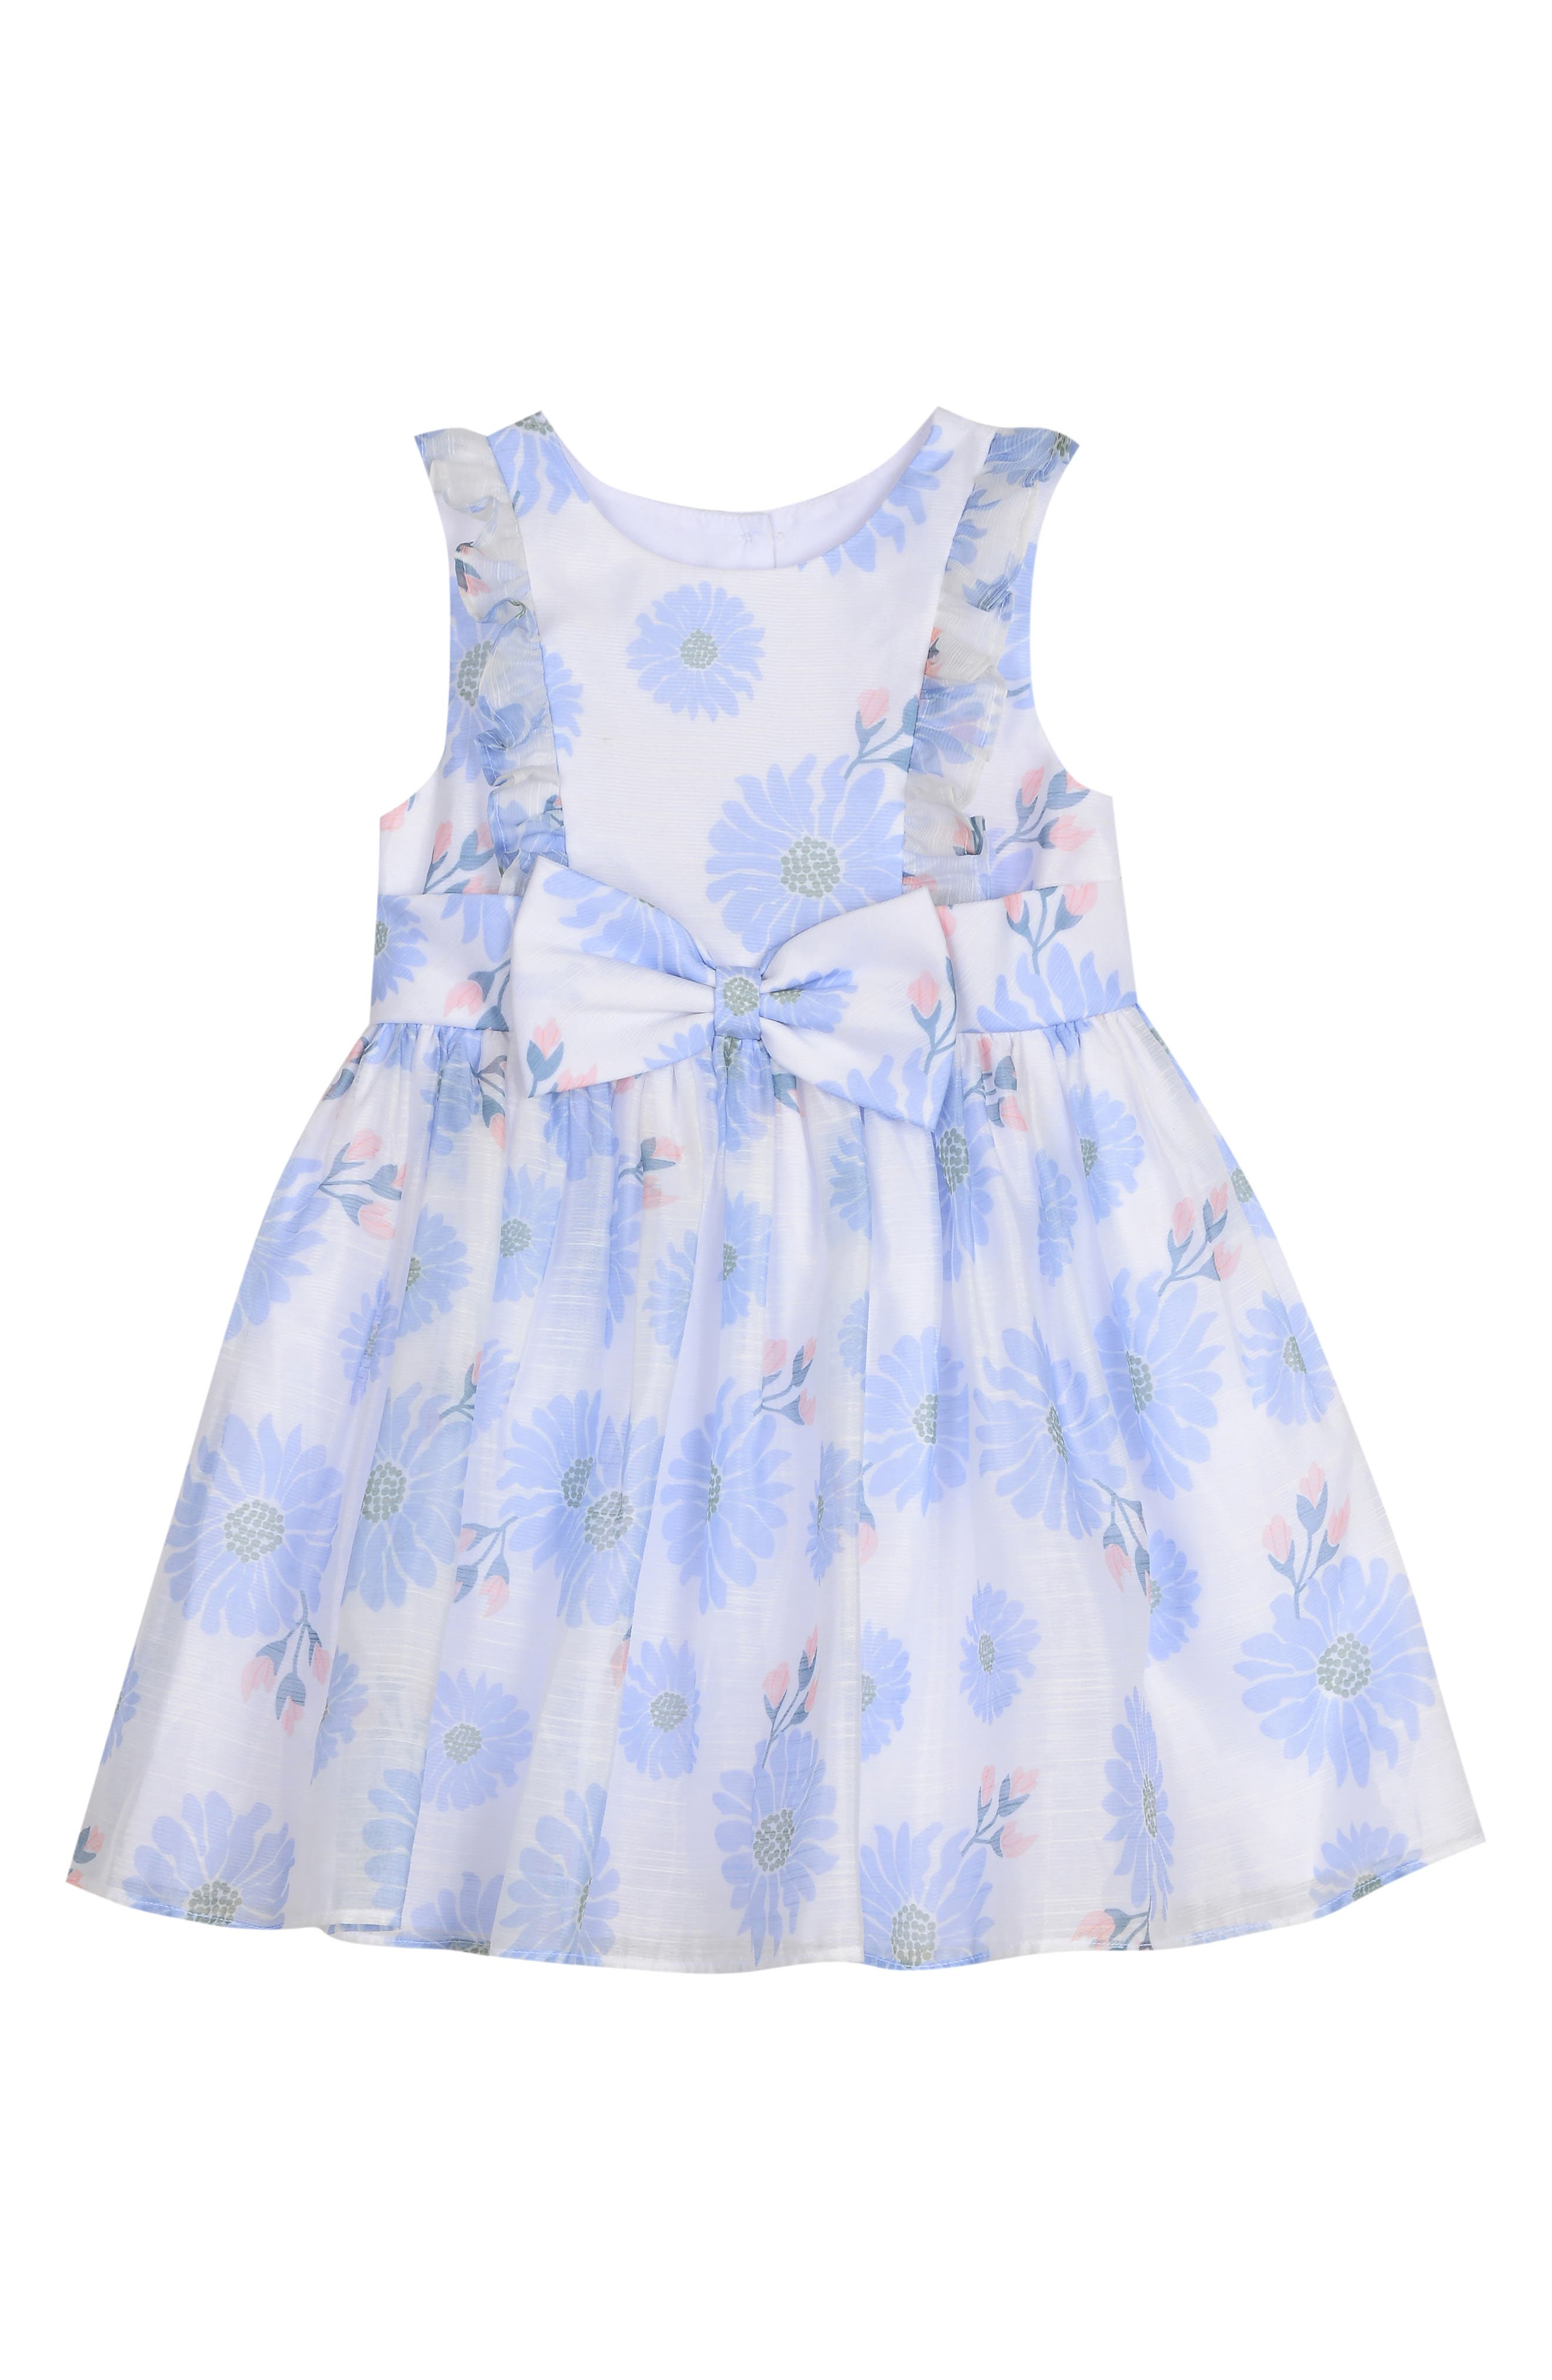 PIPPA & JULIE Floral Bow Front Dress, Main, color, WHITE/ BLUE